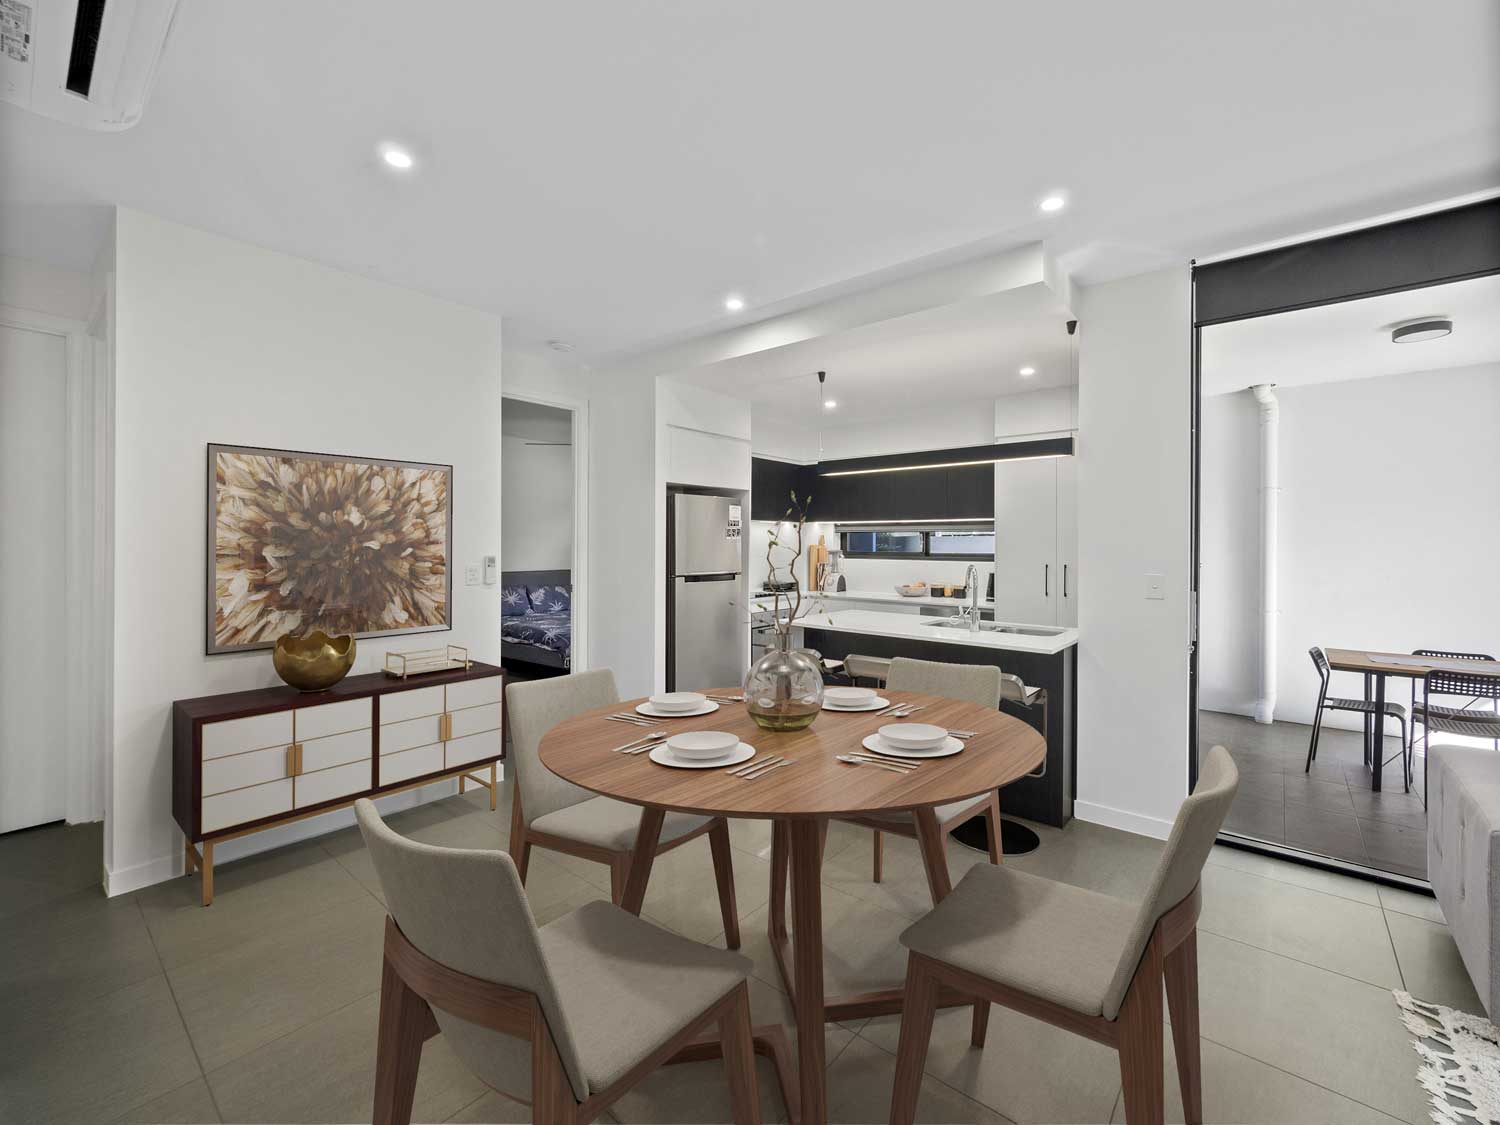 The dining area with virtual furniture table added - Apartment photography at Upper Mt Gravatt